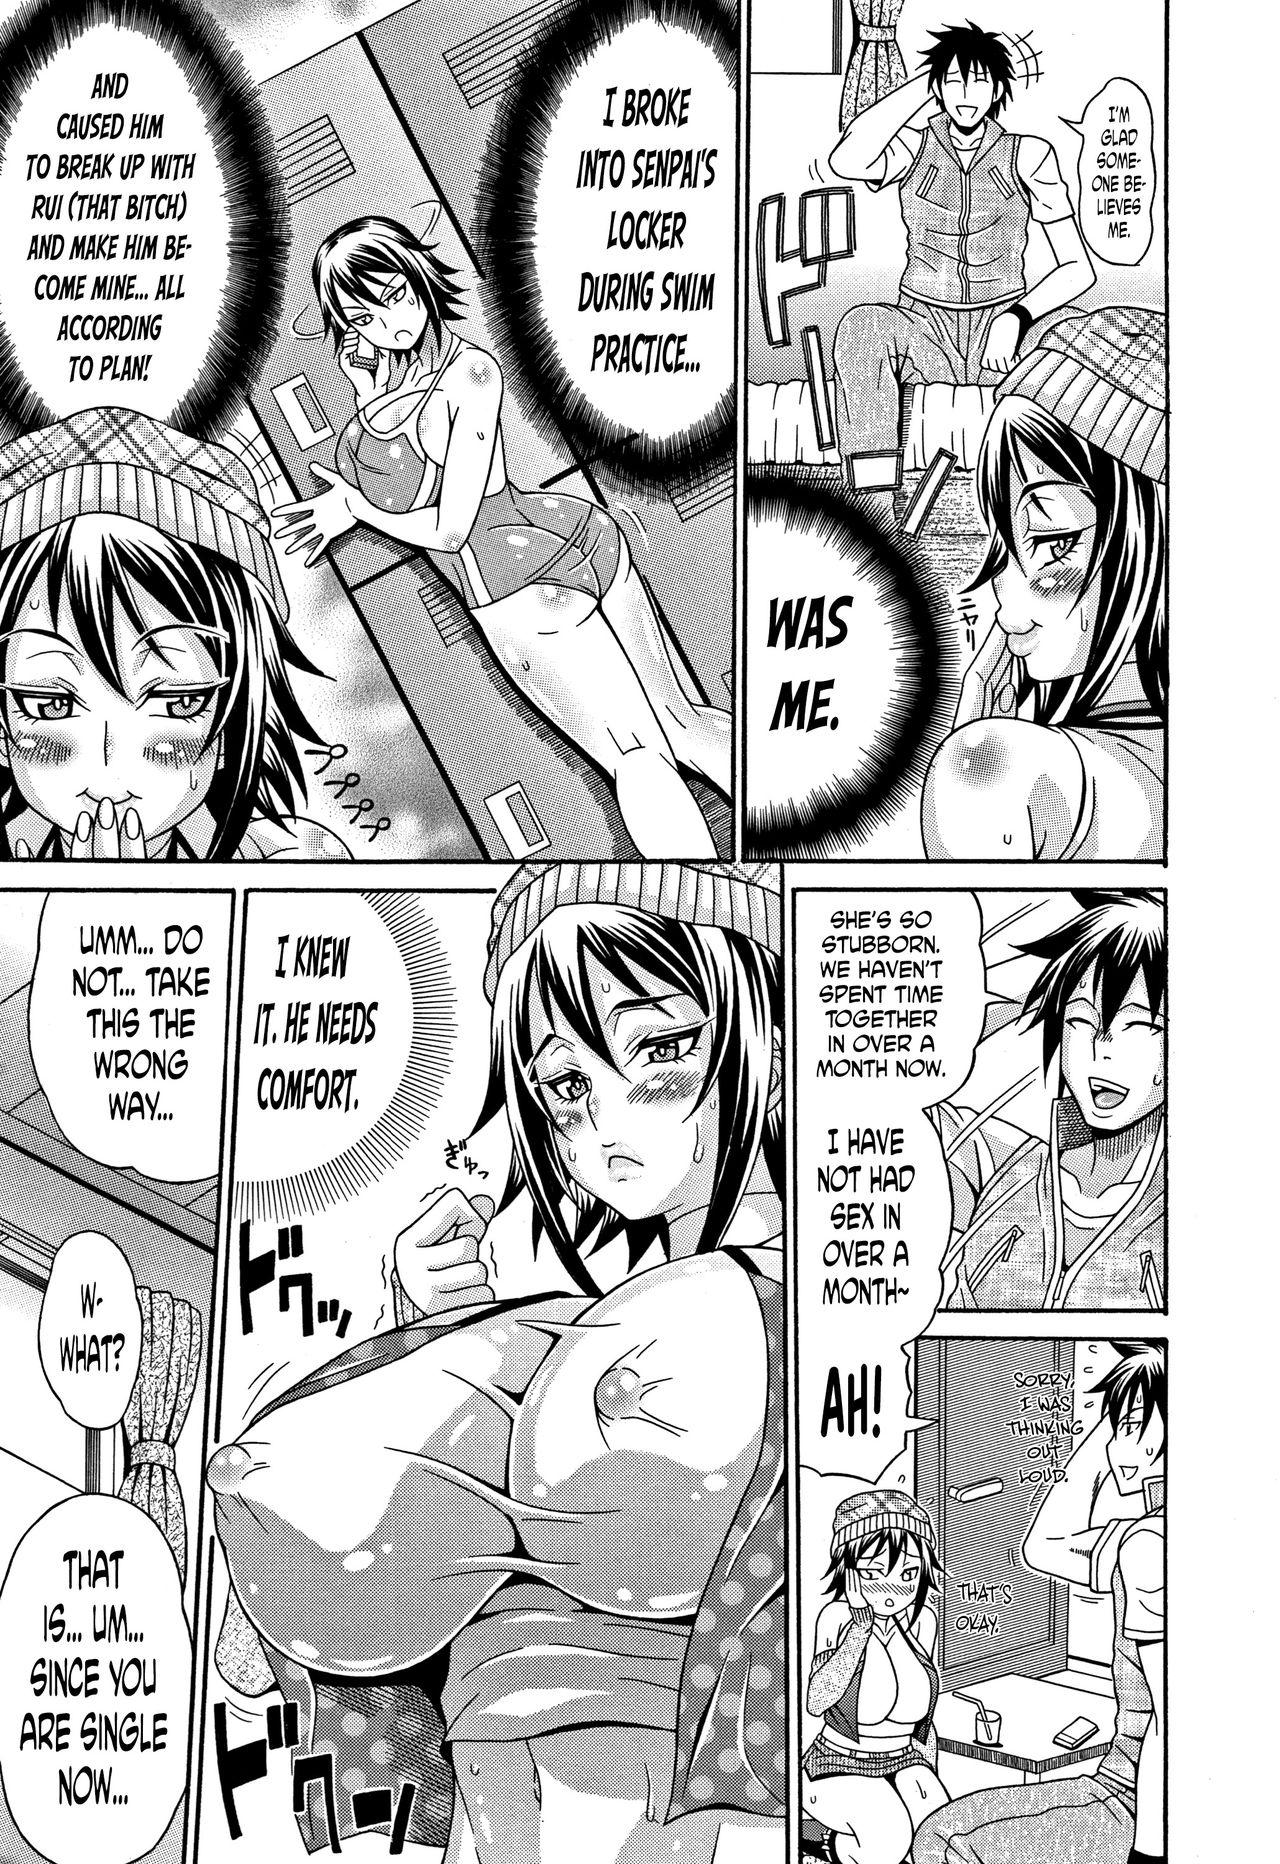 [Andou Hiroyuki] Mamire Chichi - Sticky Tits Feel Hot All Over. Ch.1-7 [English] [doujin-moe.us] 57